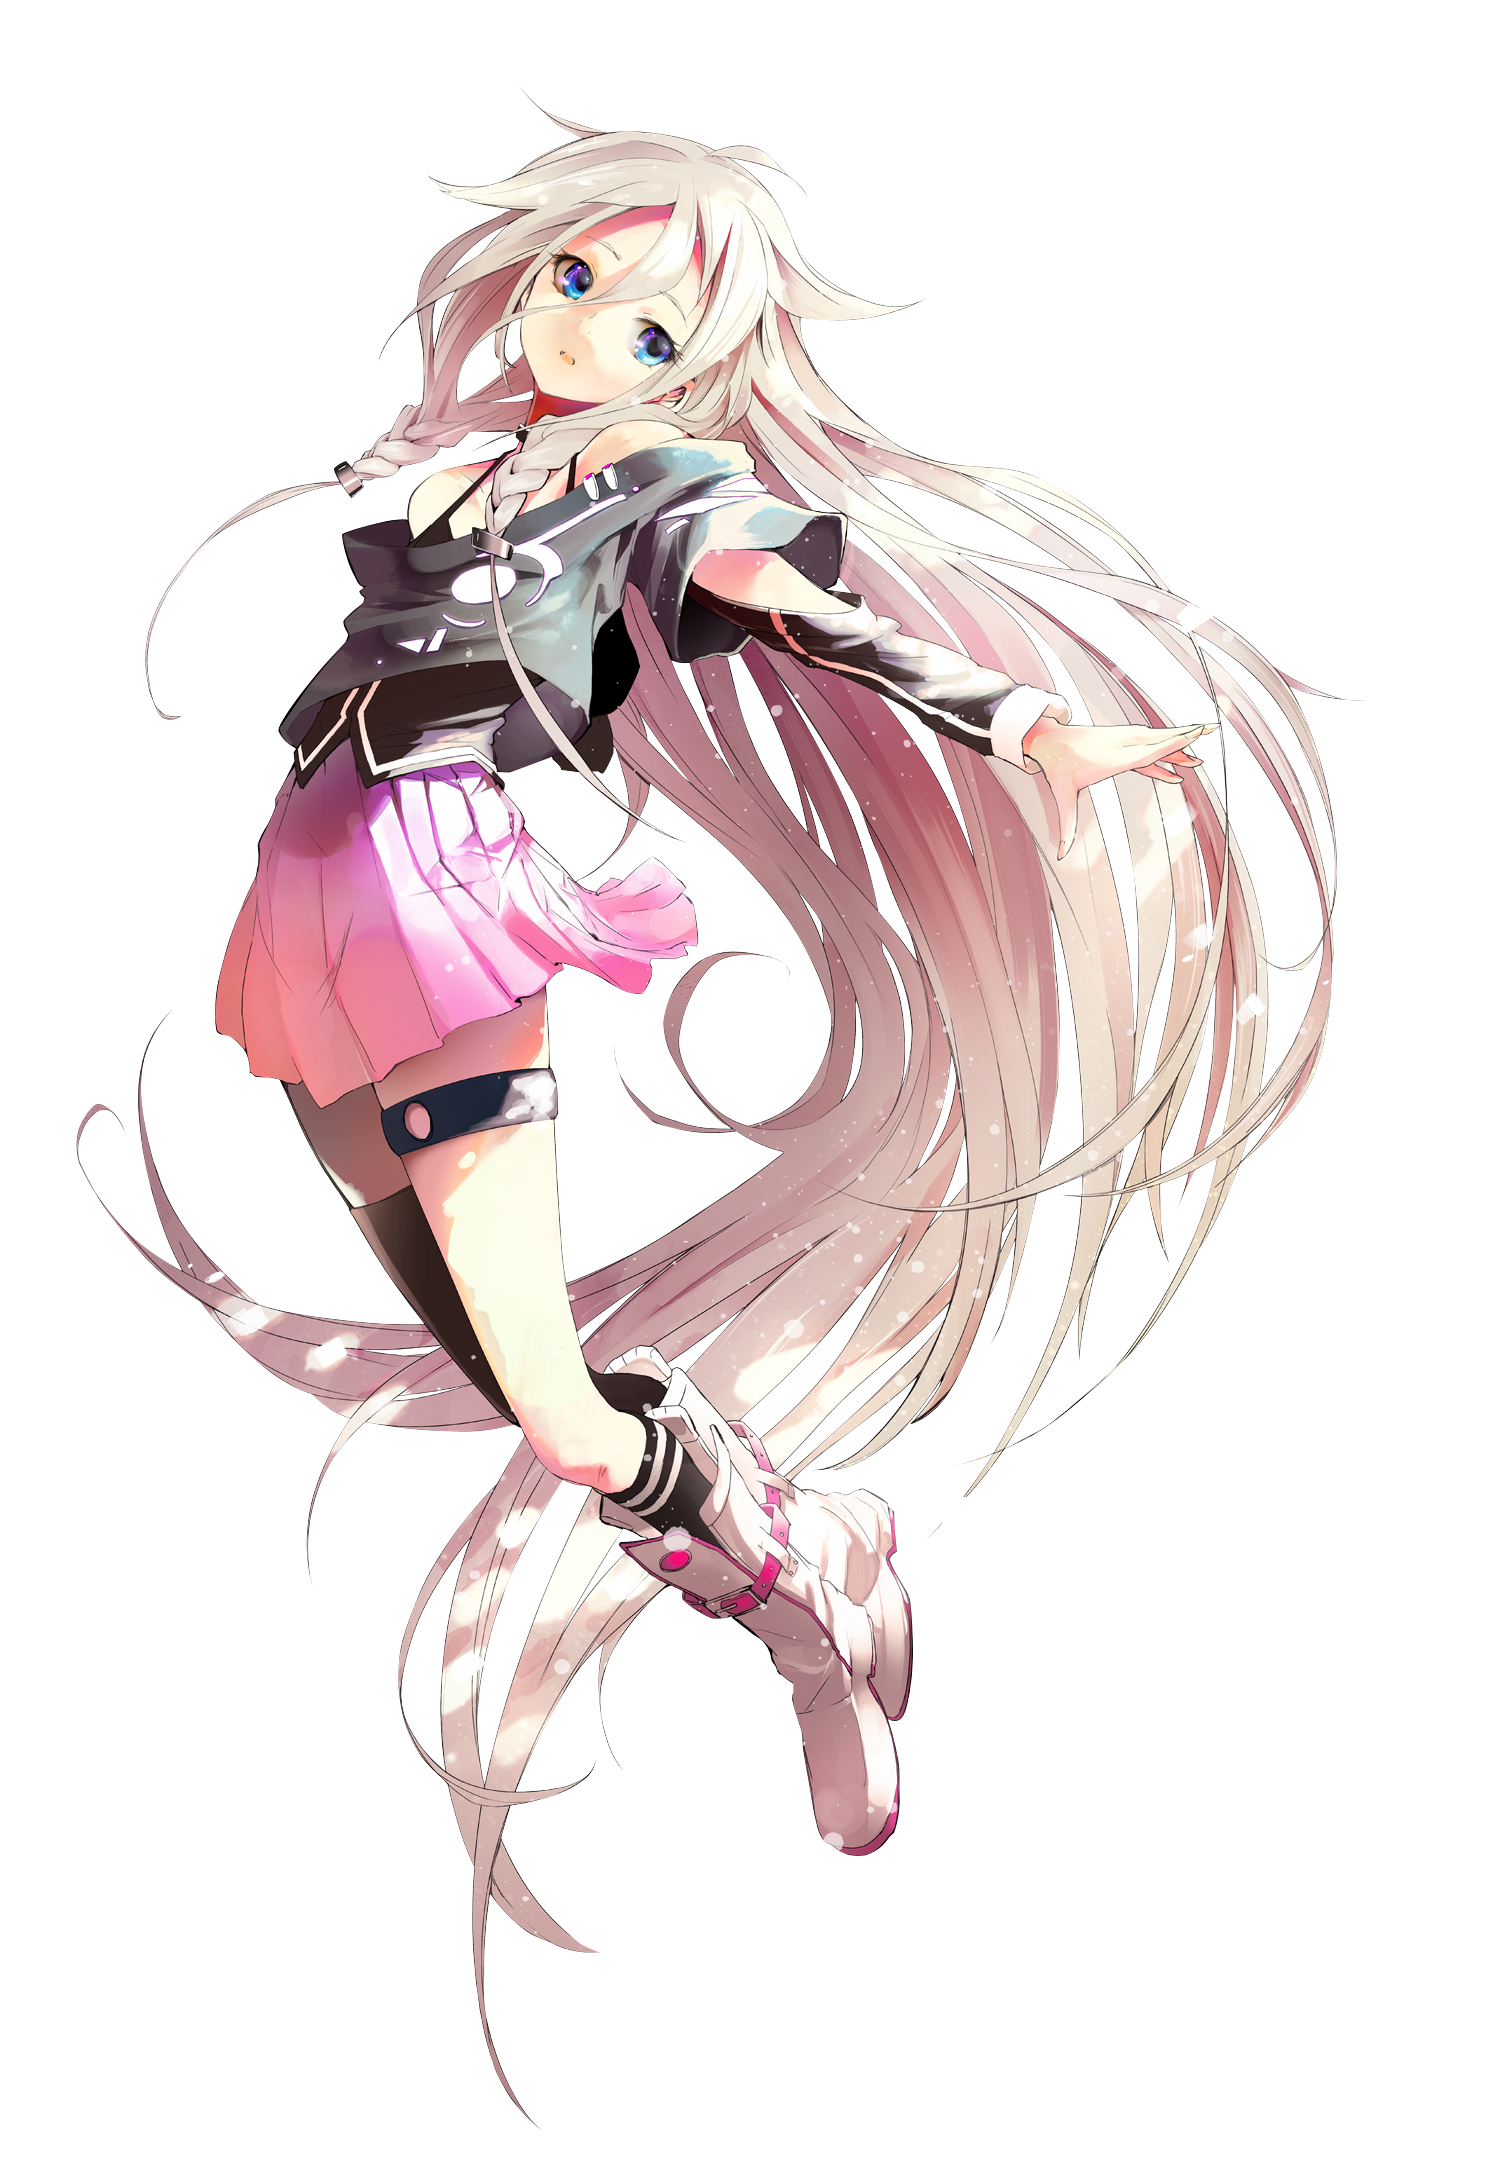 image ia png vocaloid wiki fandom powered by wikia